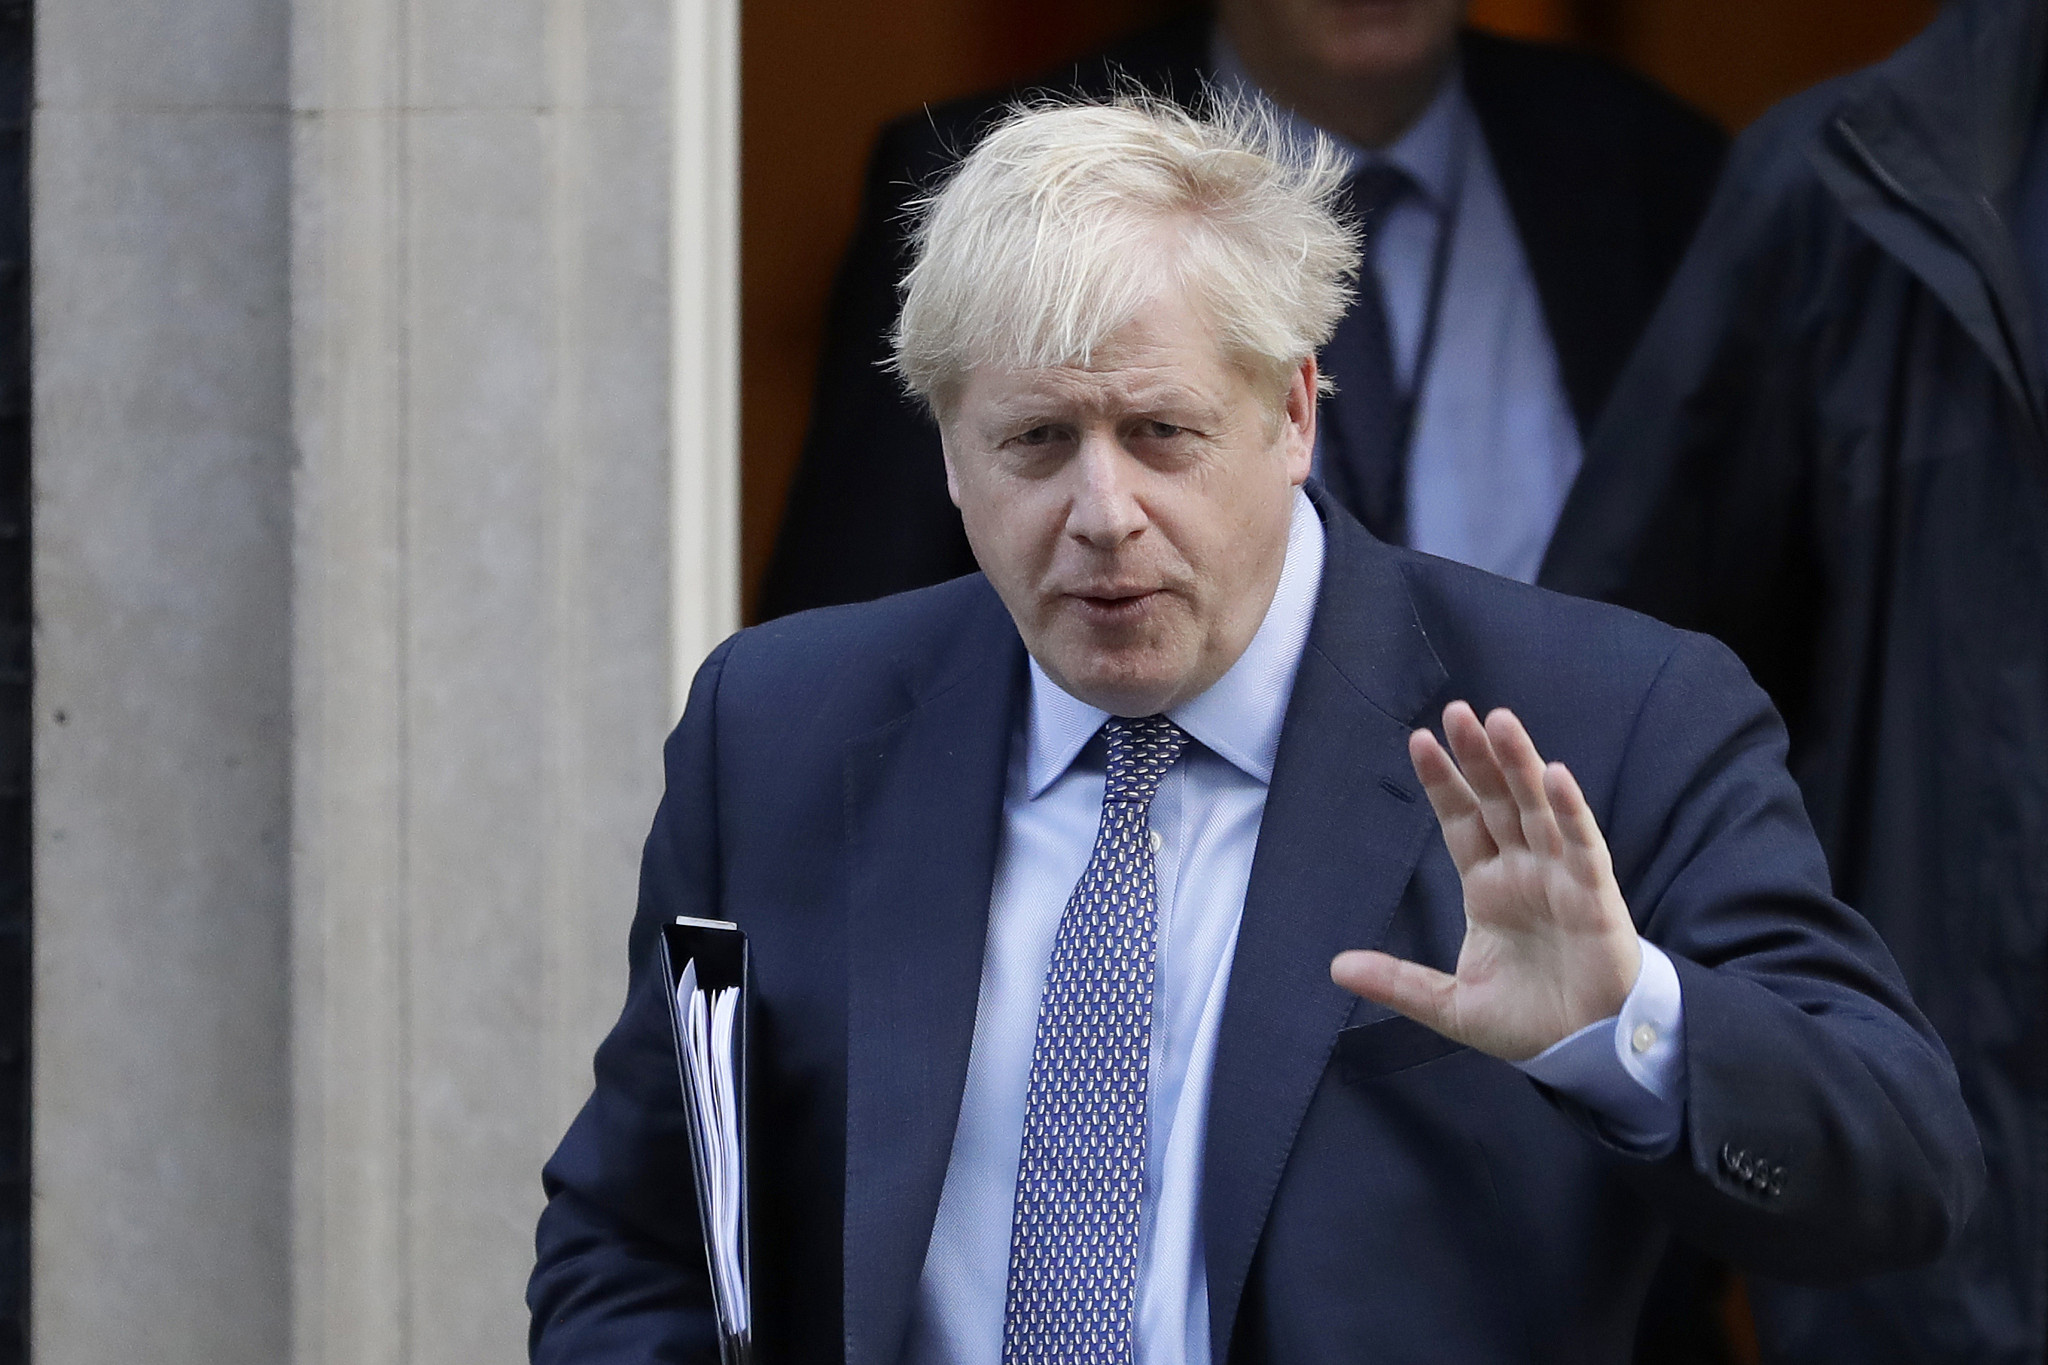 Brexit: Boris Johnson to push for election if European Union offers longer delay